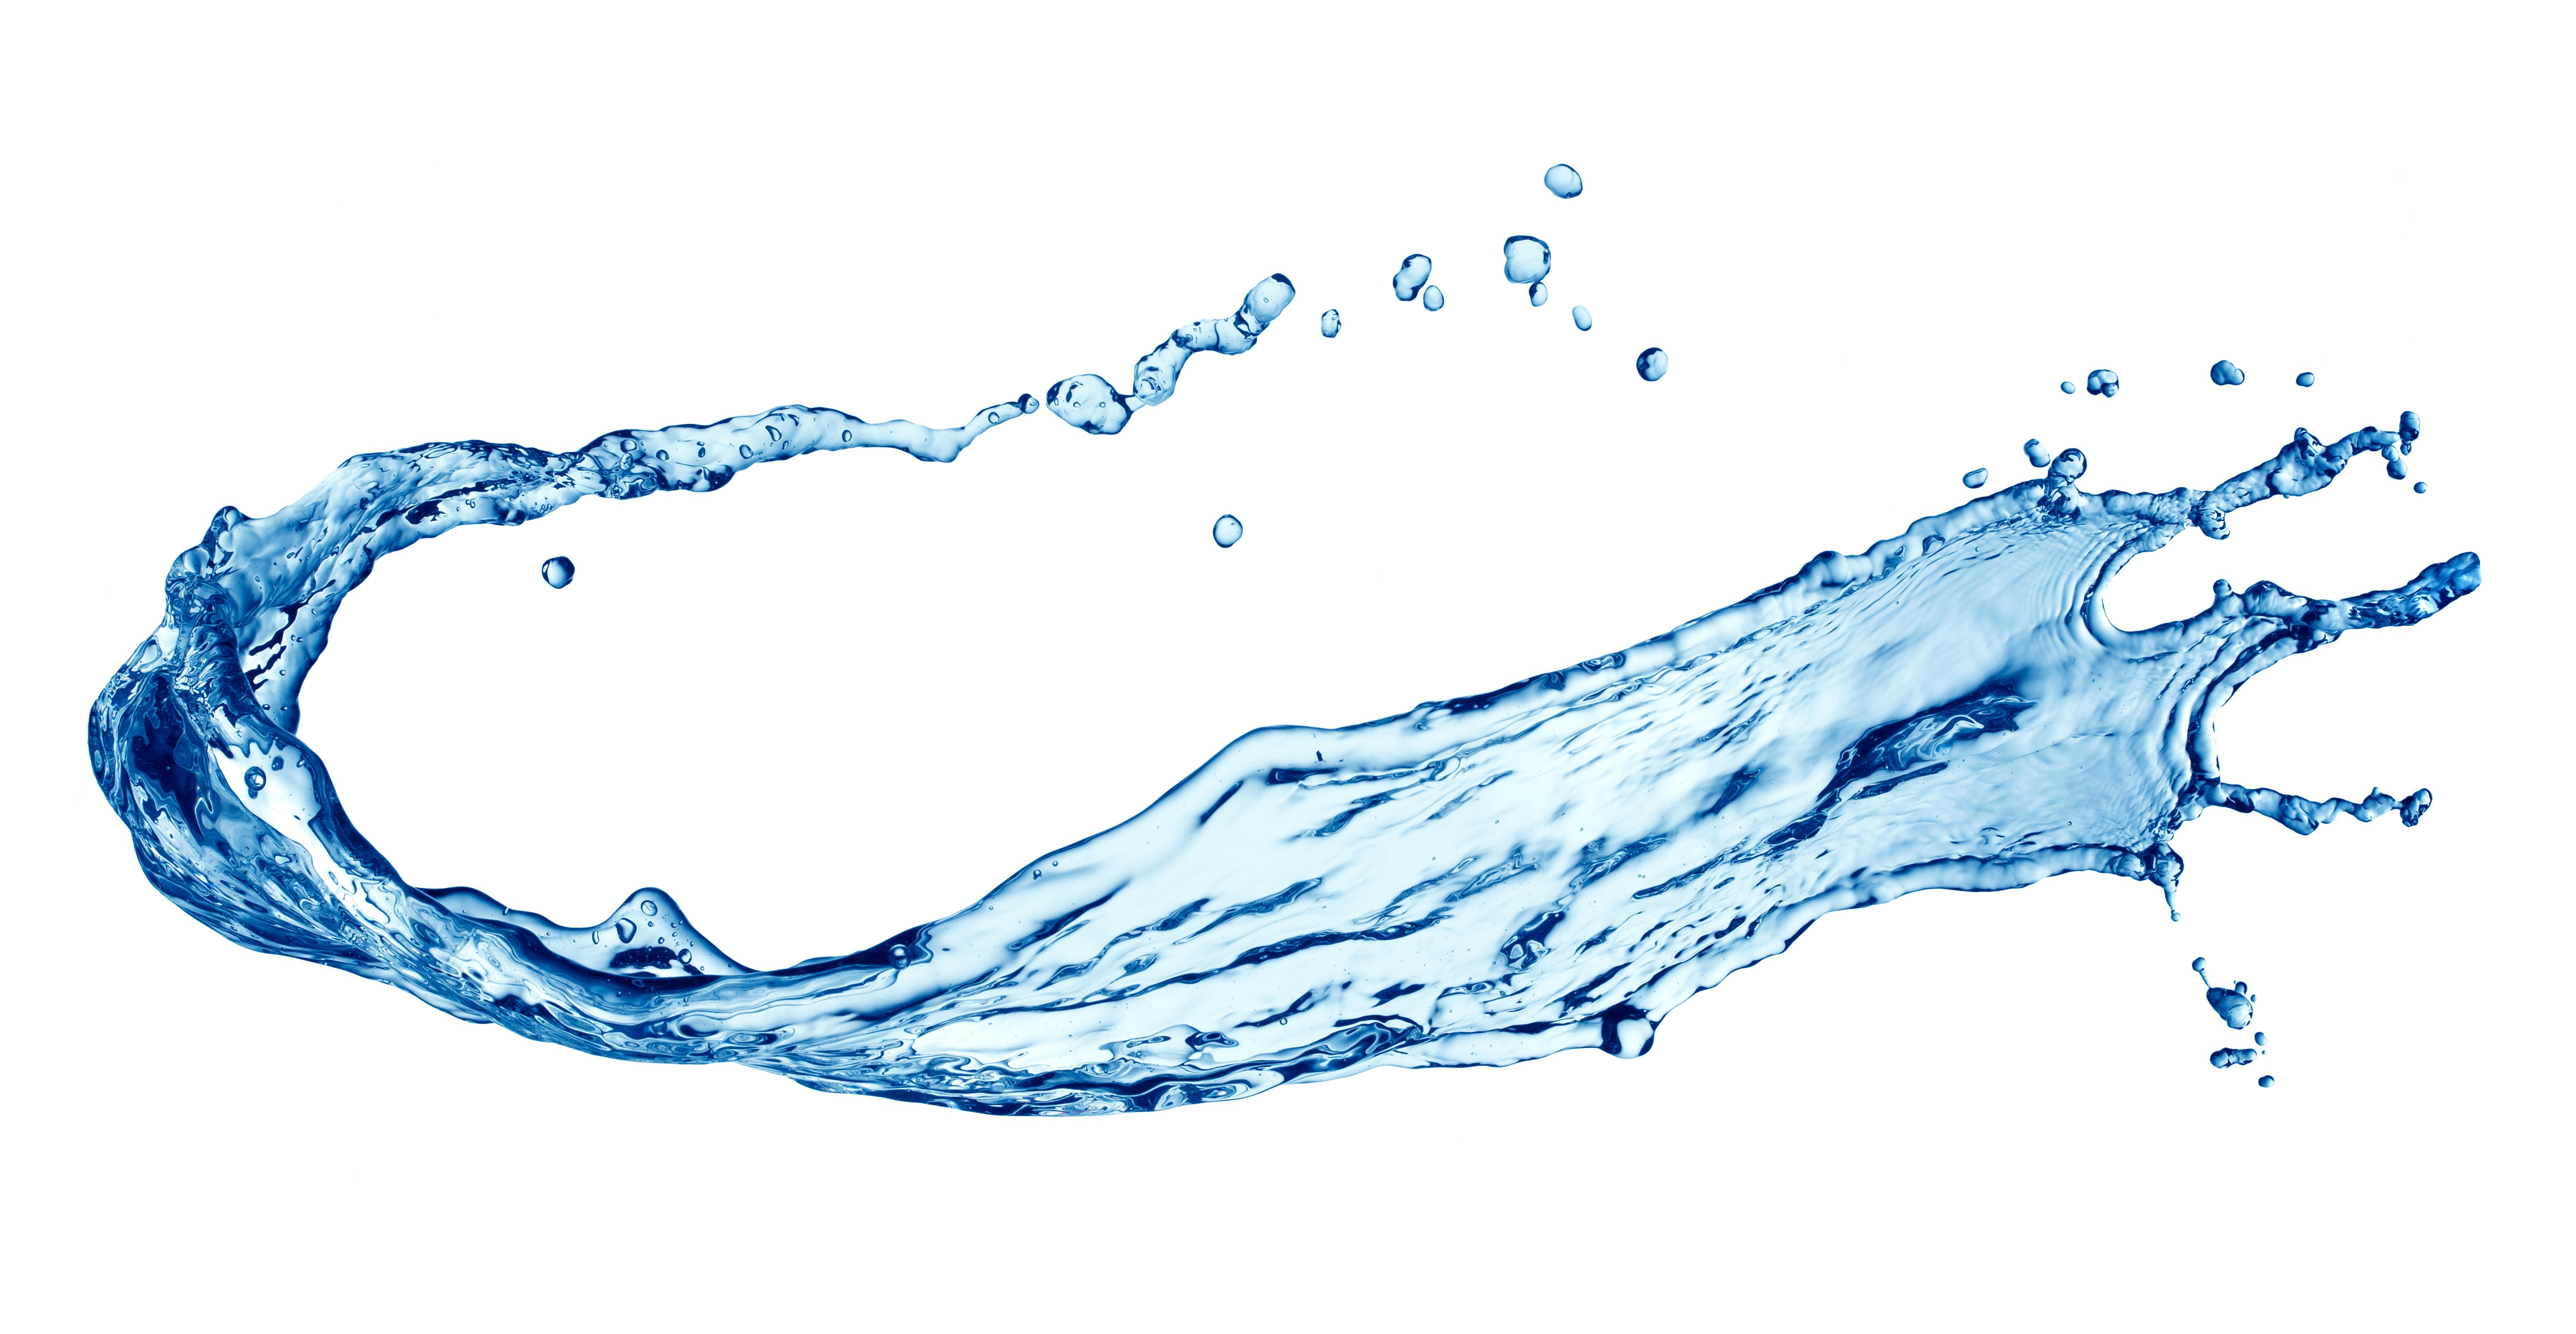 Water Wallpaper For Computer